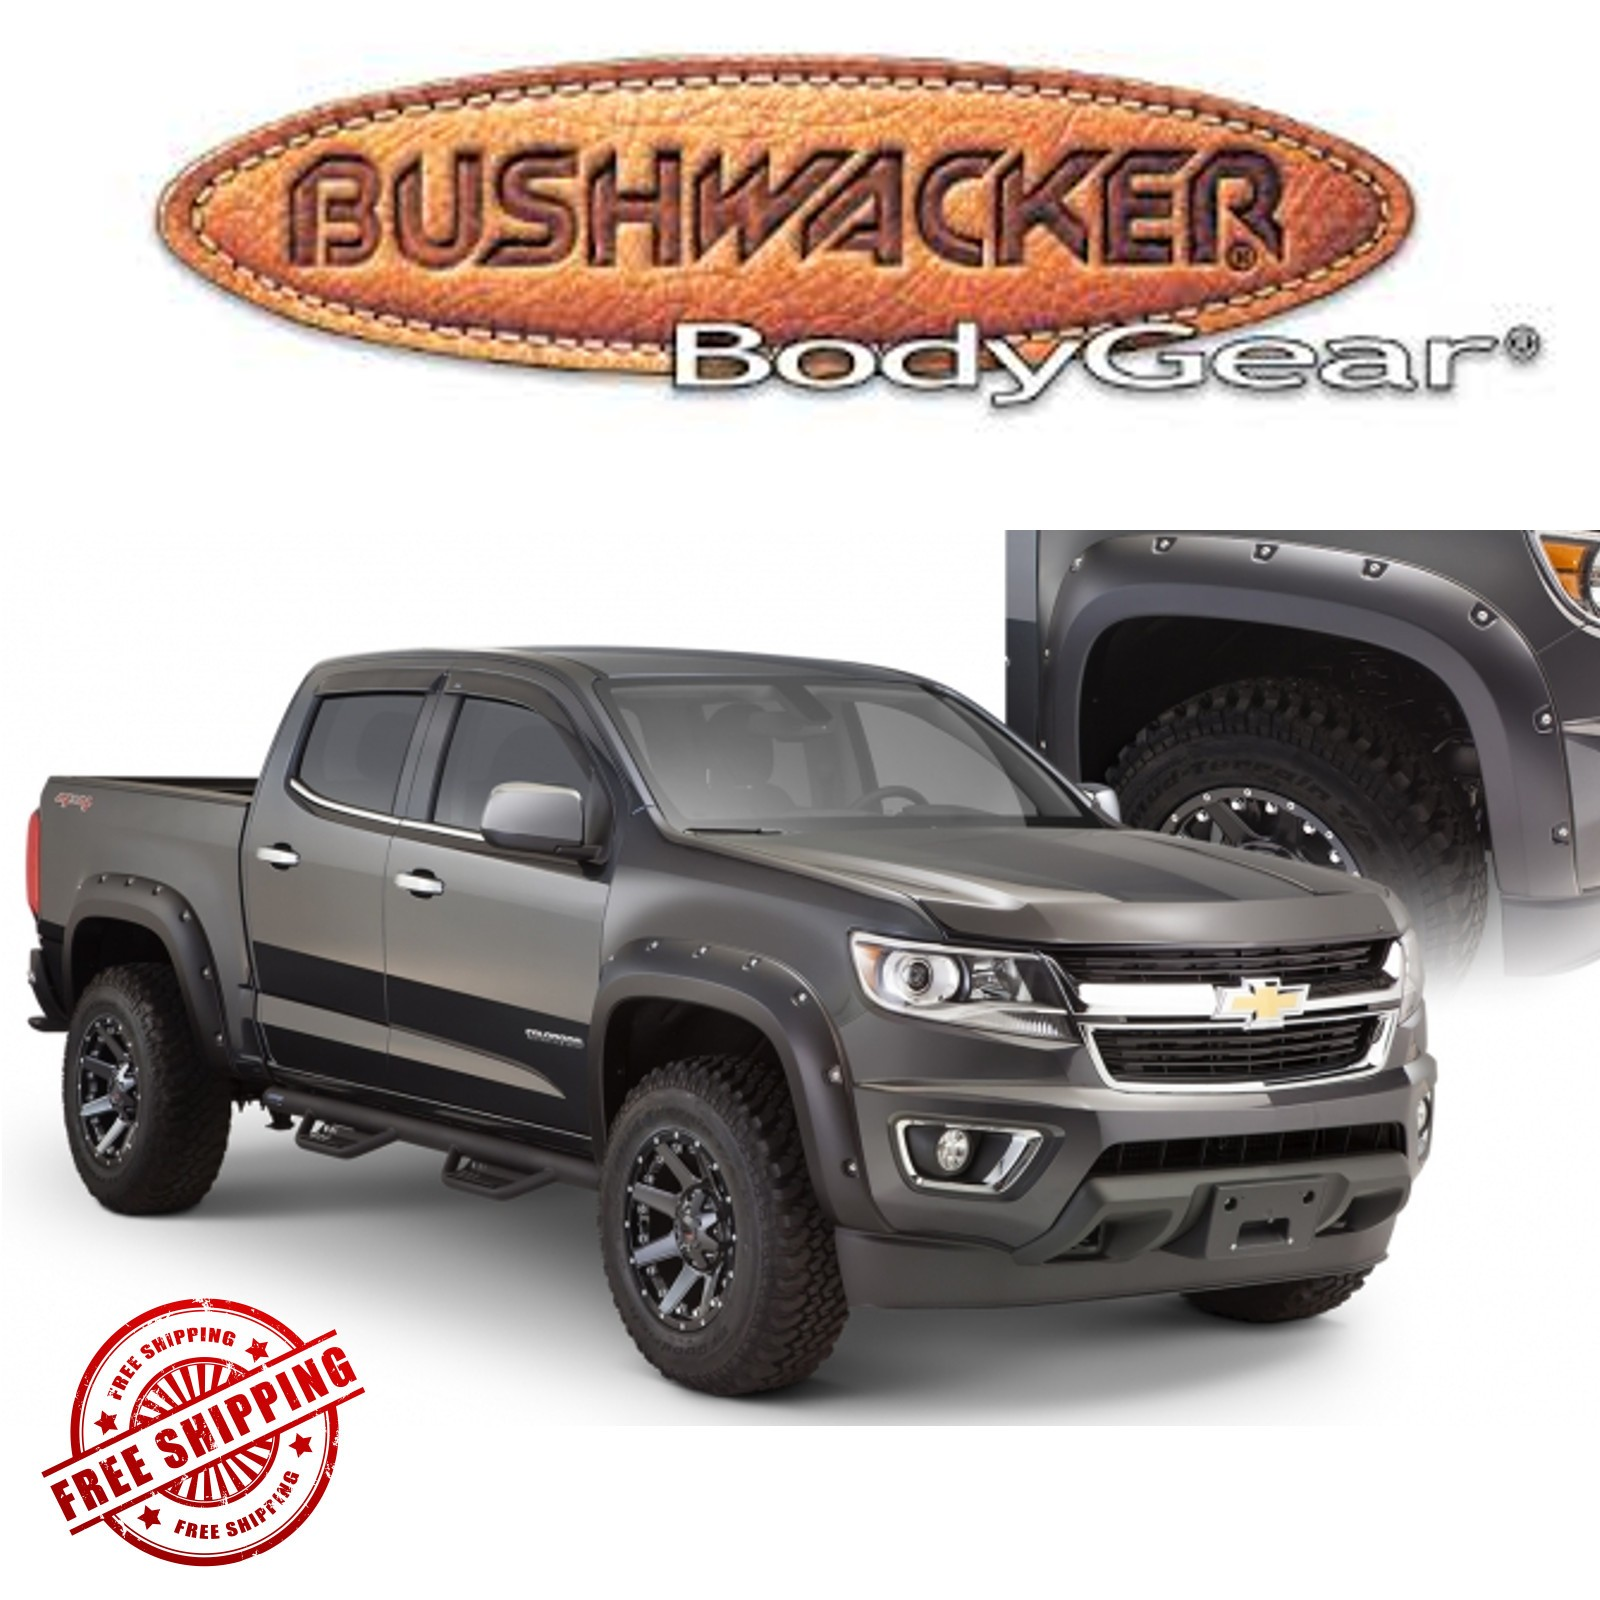 hight resolution of details about bushwacker matte black pocket style fender flares fits 2015 2019 chevy colorado